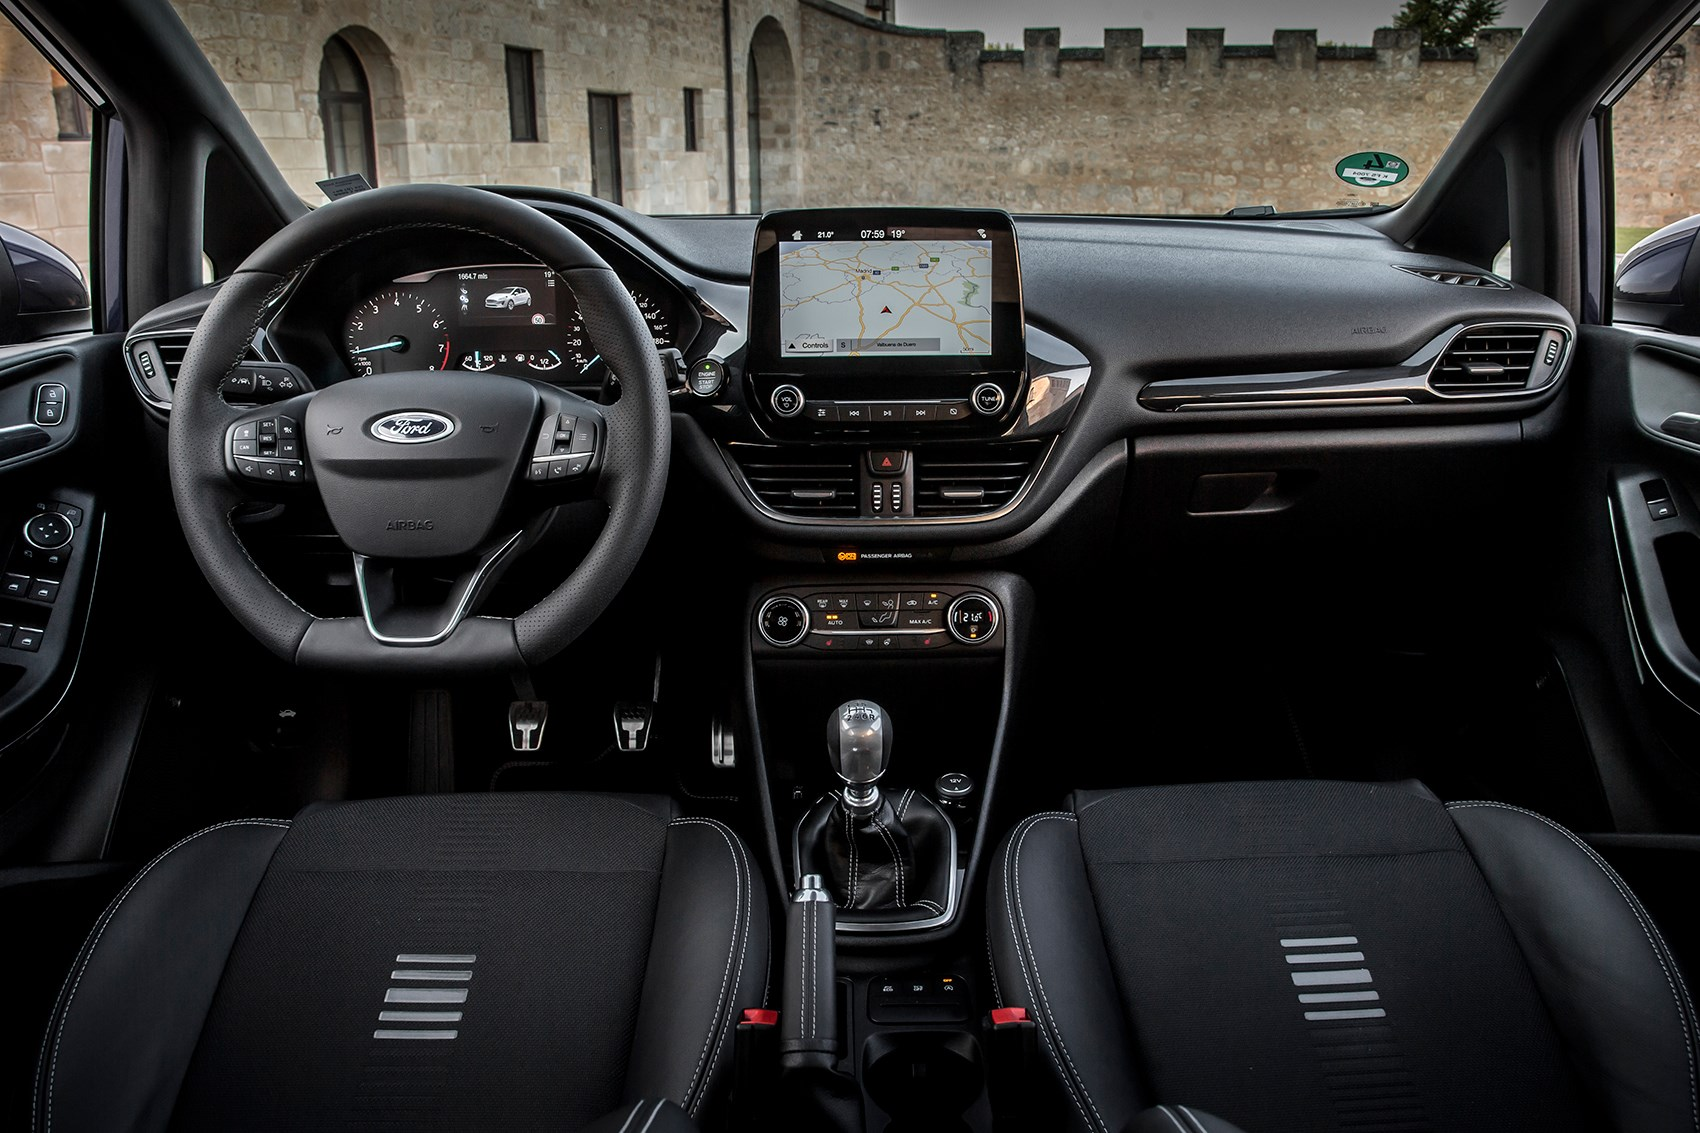 Ford Fiesta interior: much higher quality, note new 8in touchscreen infotainment